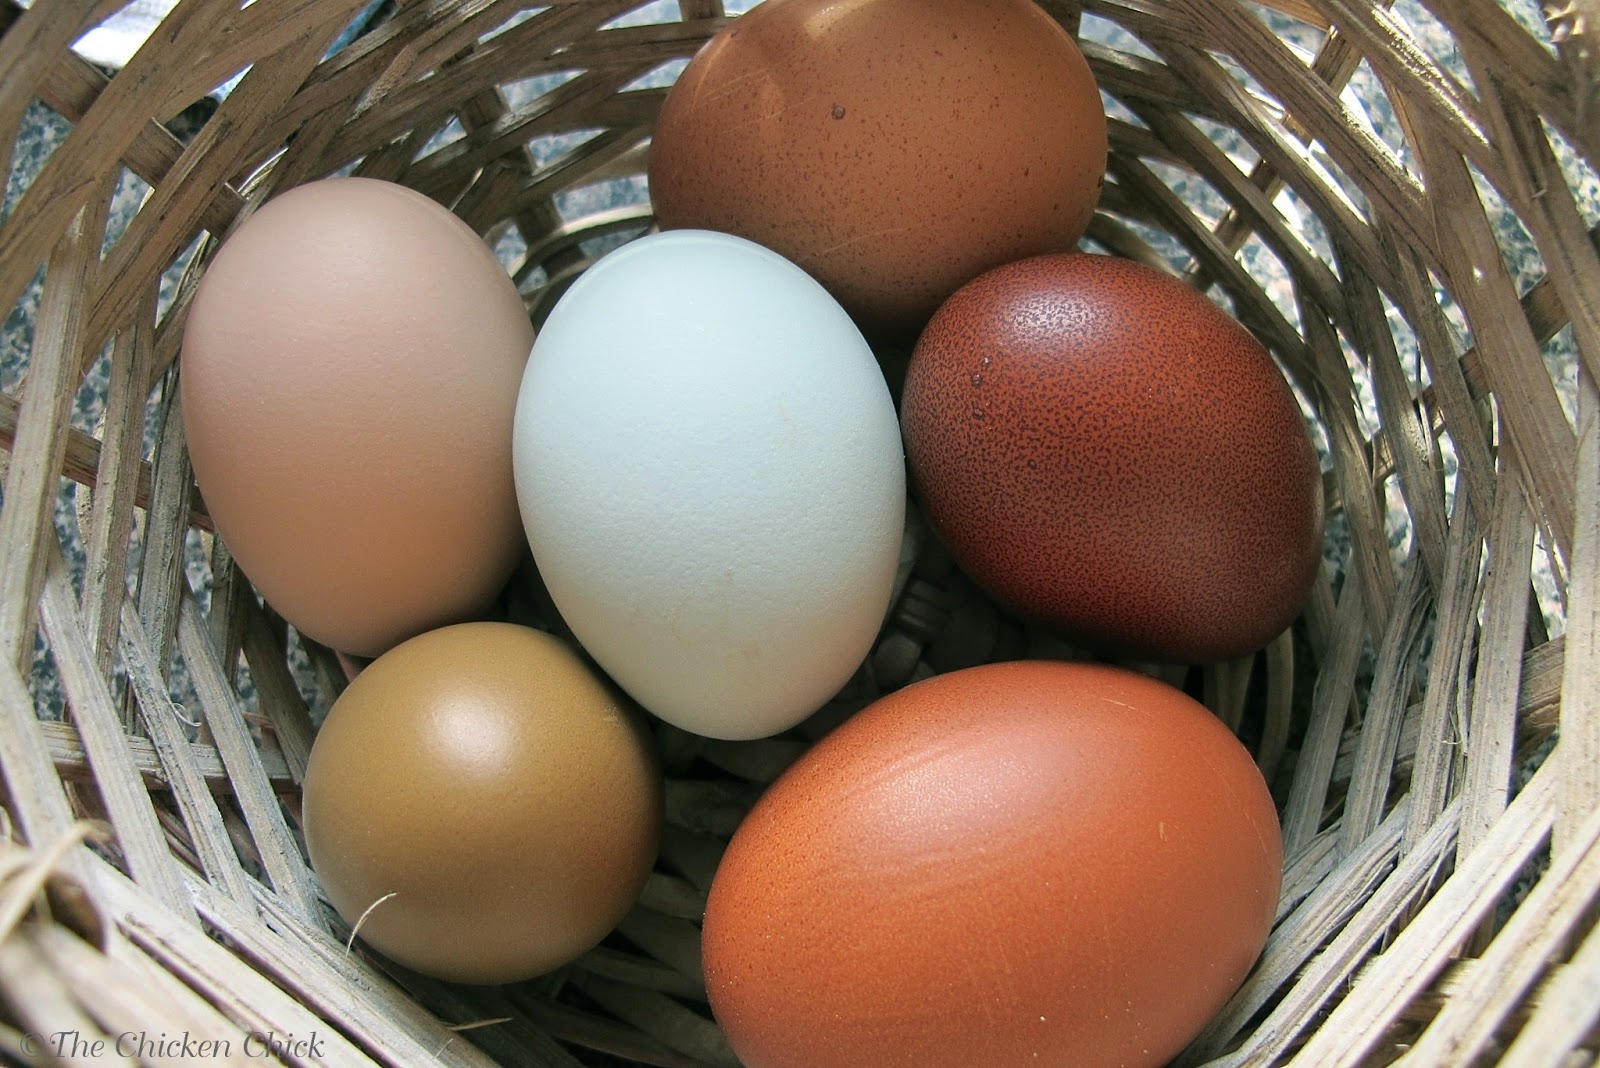 Cool Egg Facts  Video of Hen Laying an Egg  Community